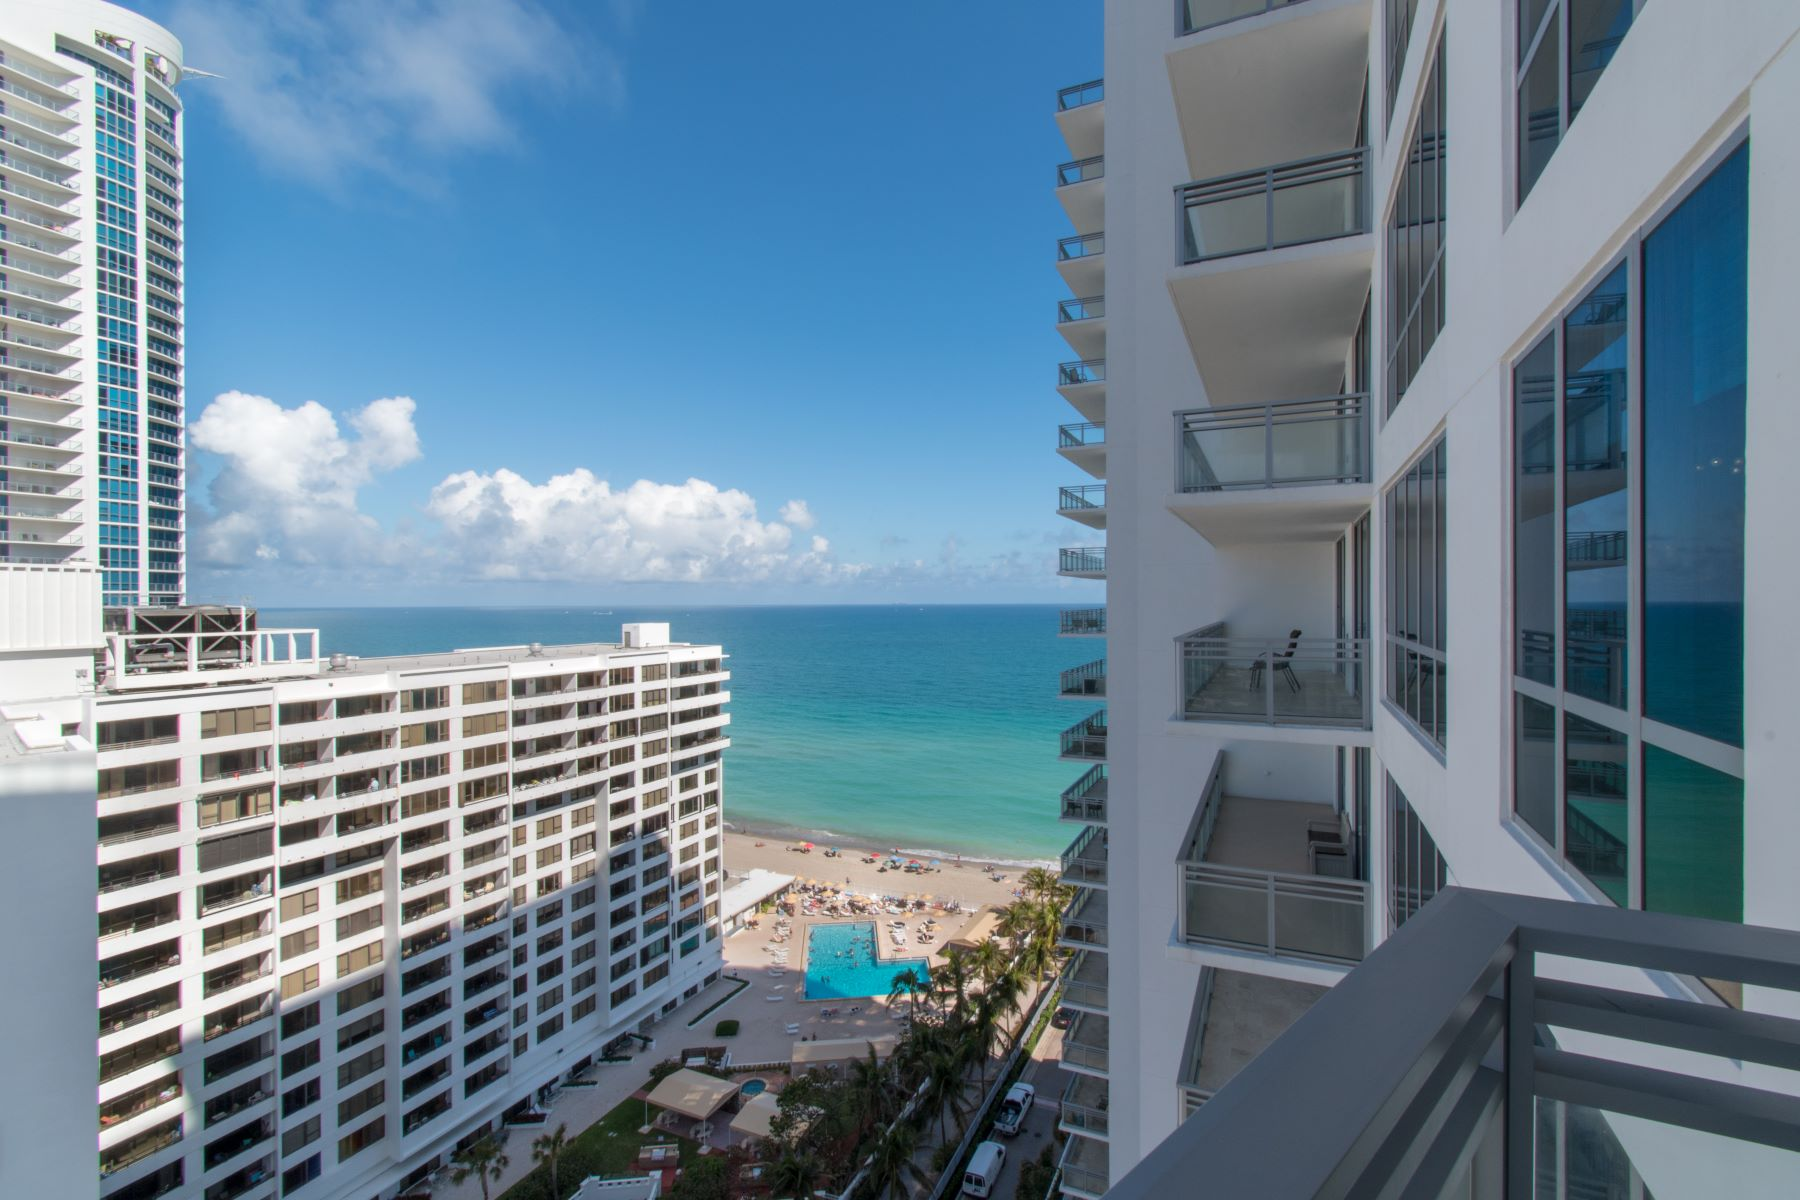 Condominium for Sale at 3535 S Ocean Dr #1706 3535 S Ocean Dr 1706 Hollywood, Florida 33019 United States